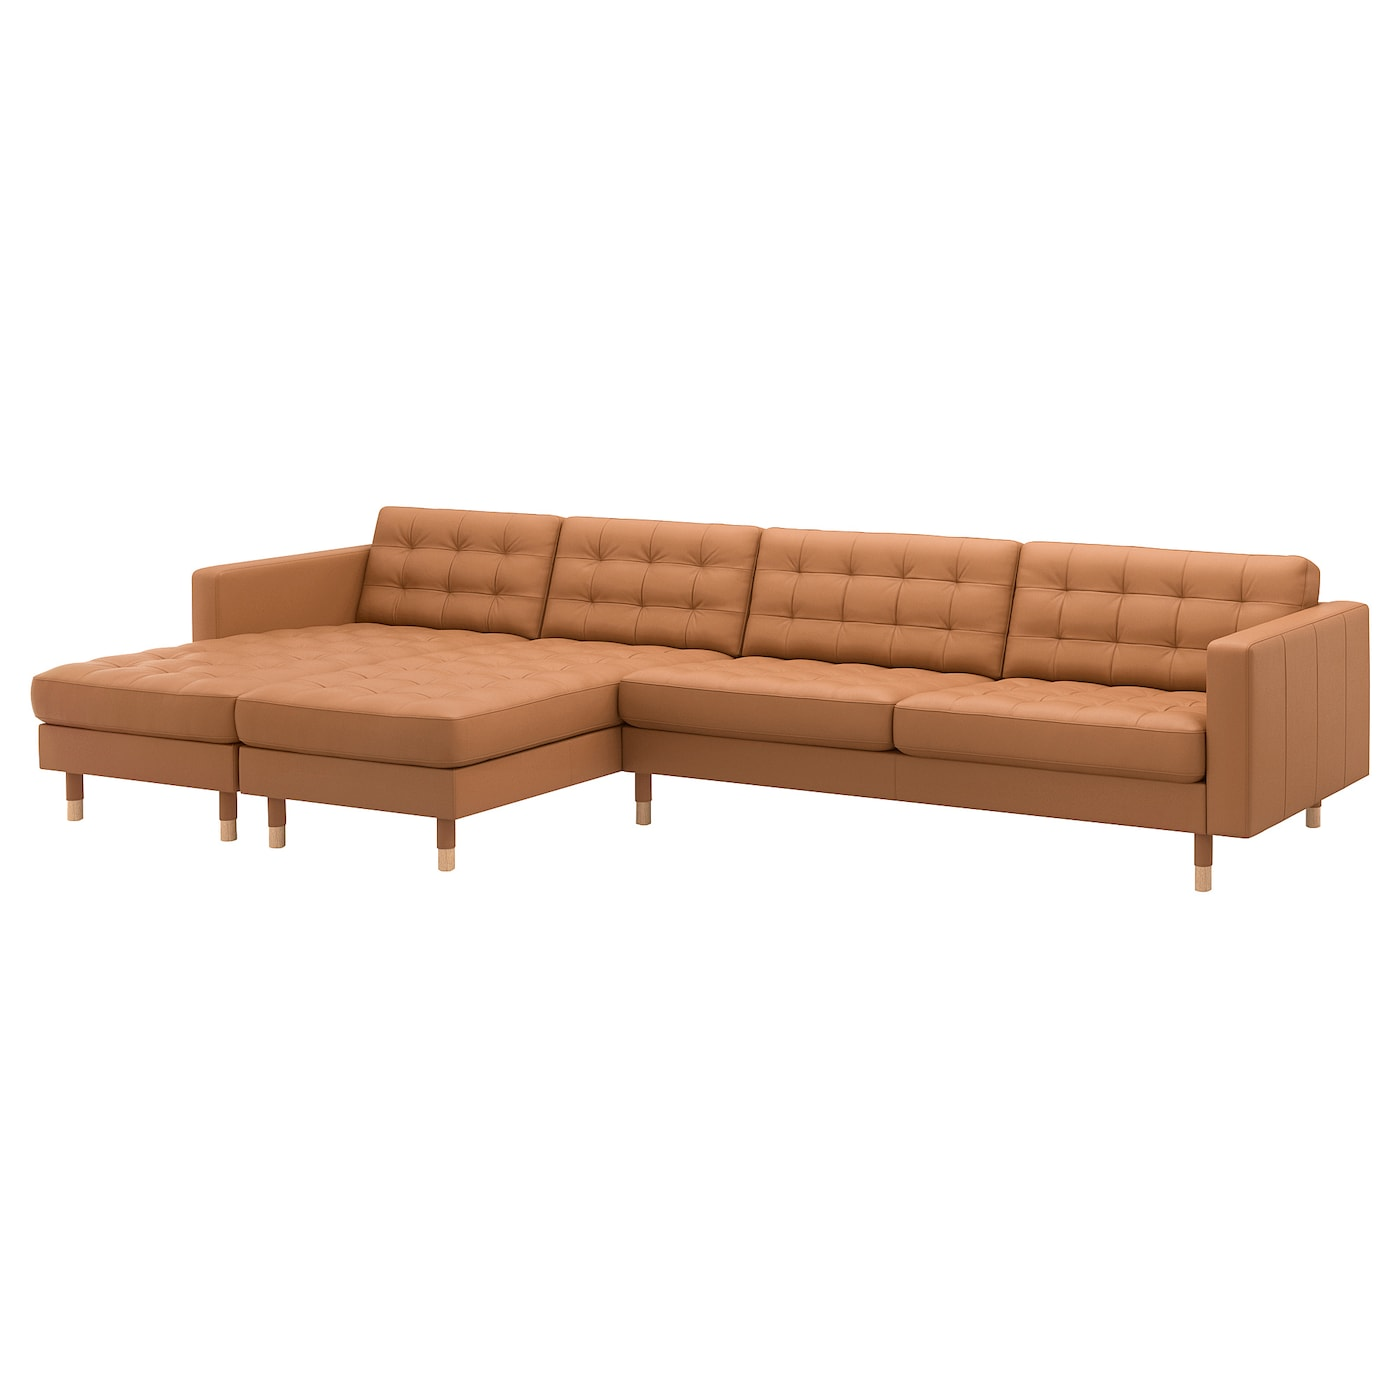 IKEA LANDSKRONA 5-seat sofa Removable armrests make it easy to add on a chaise longue.